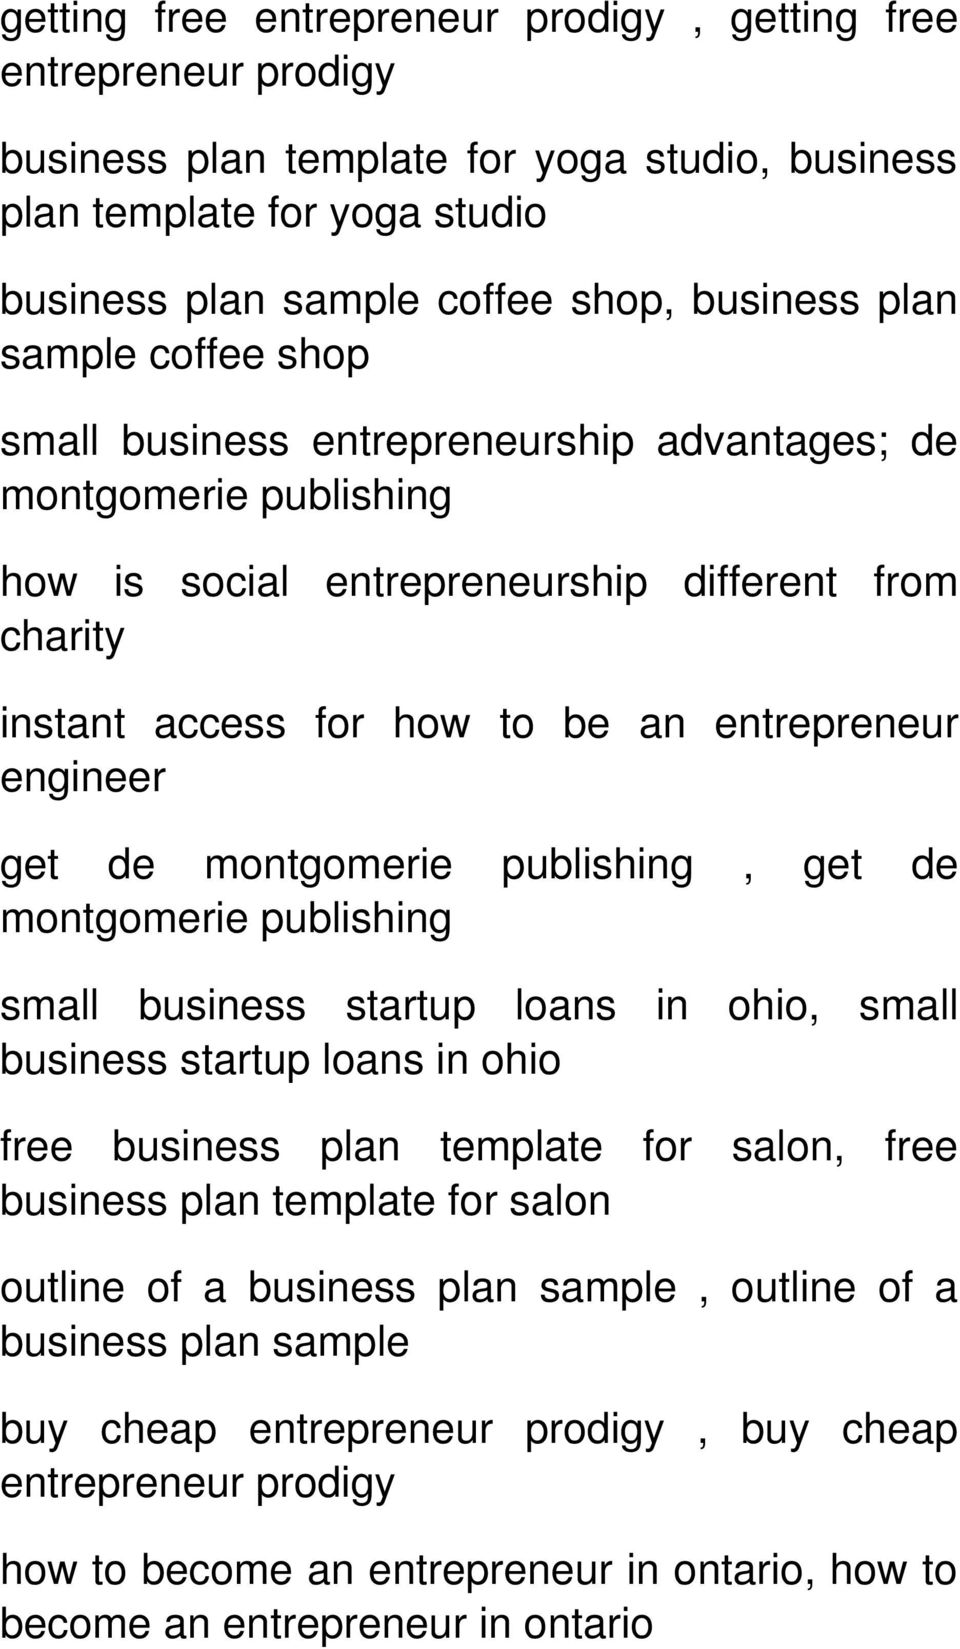 A successful entrepreneur in india business plan template for a get de get de small business startup loans in ohio small business startup loans friedricerecipe Images